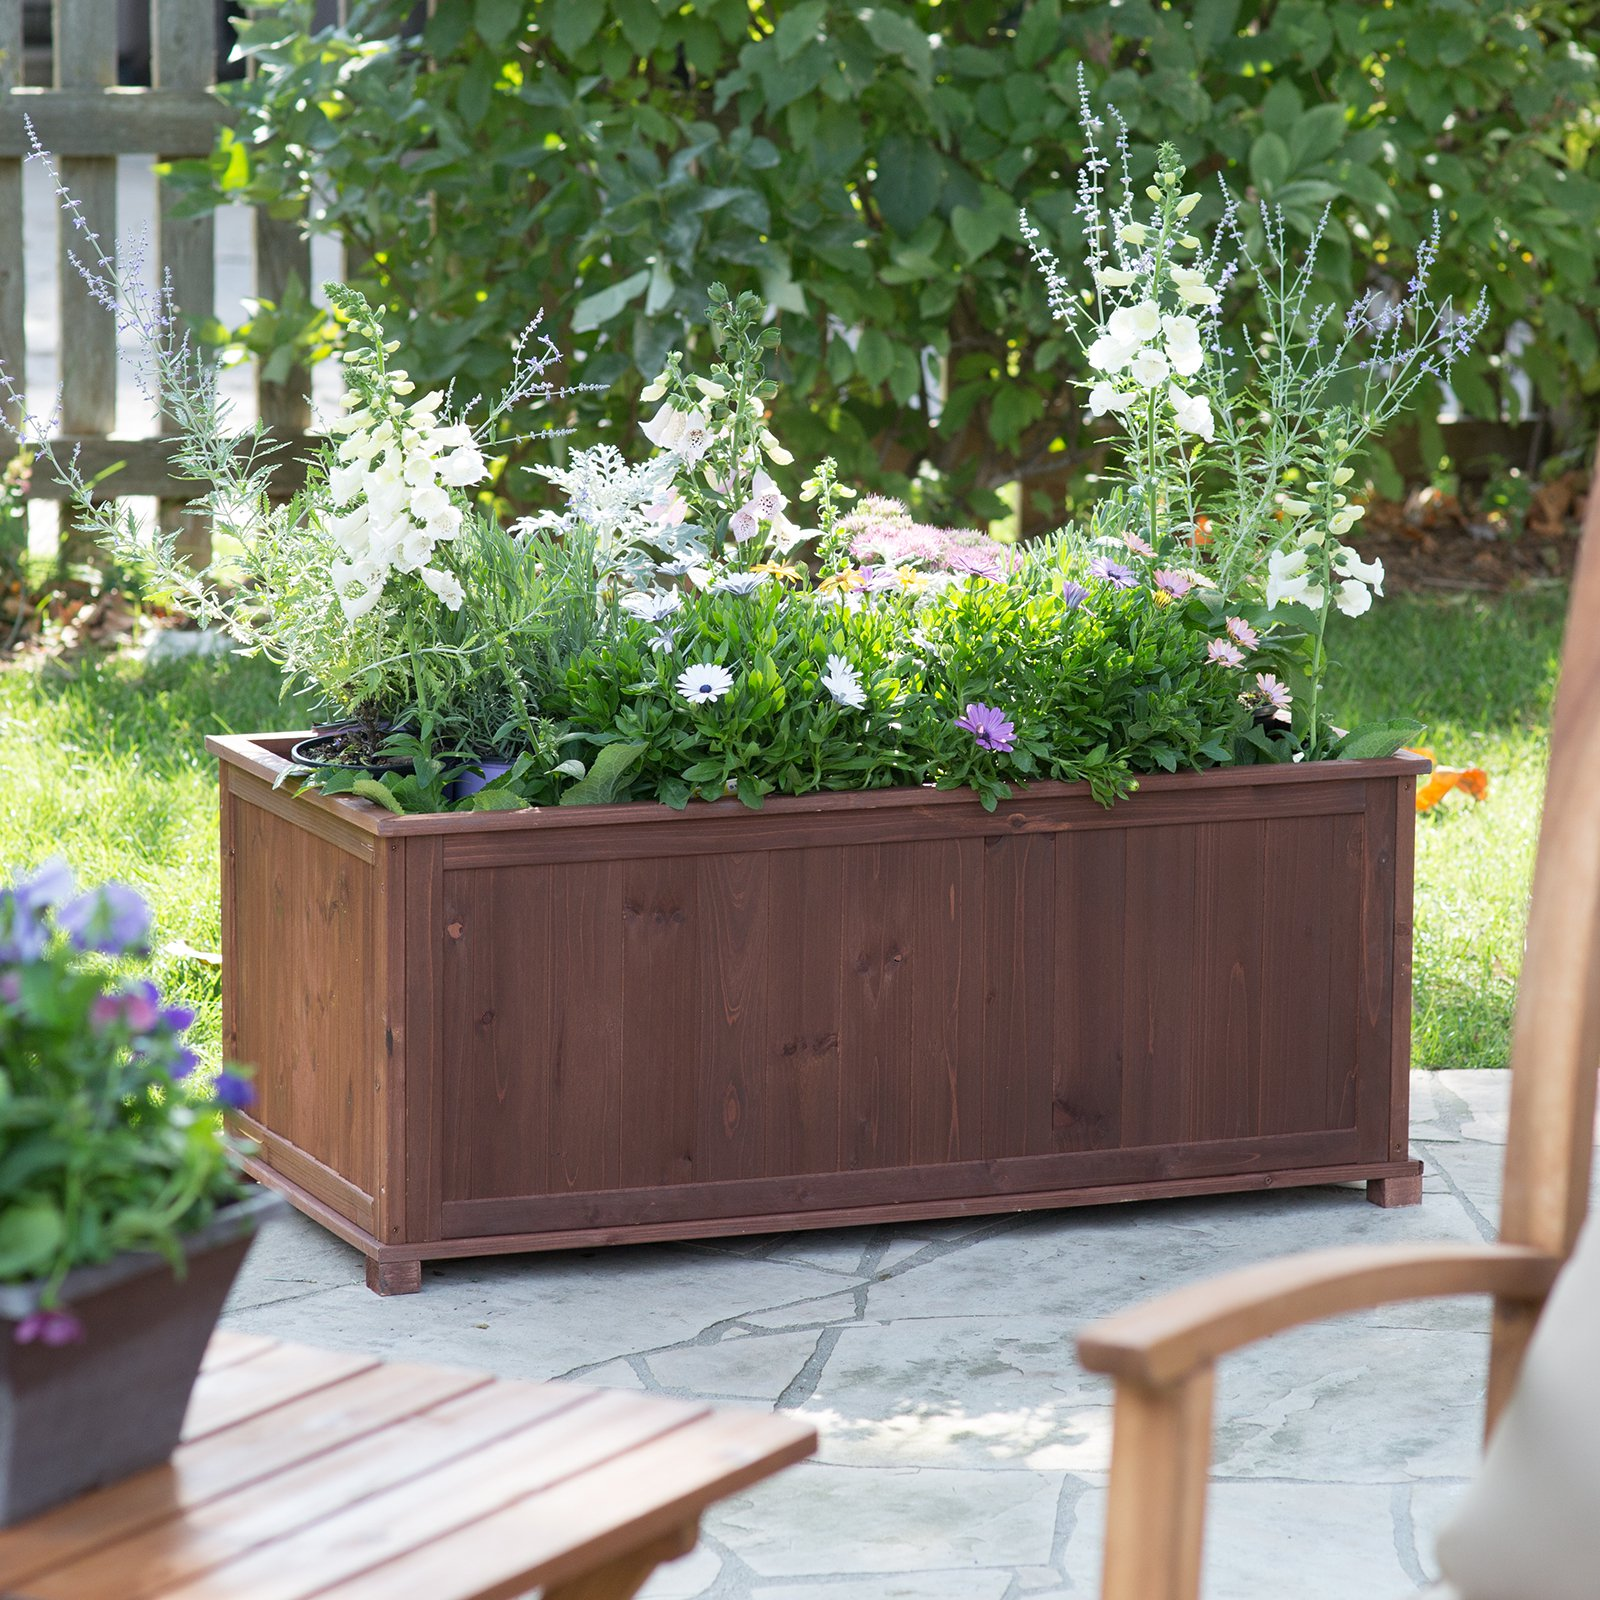 Coral Coast Aster Wood Patio Raised Planter Box by Merry Products